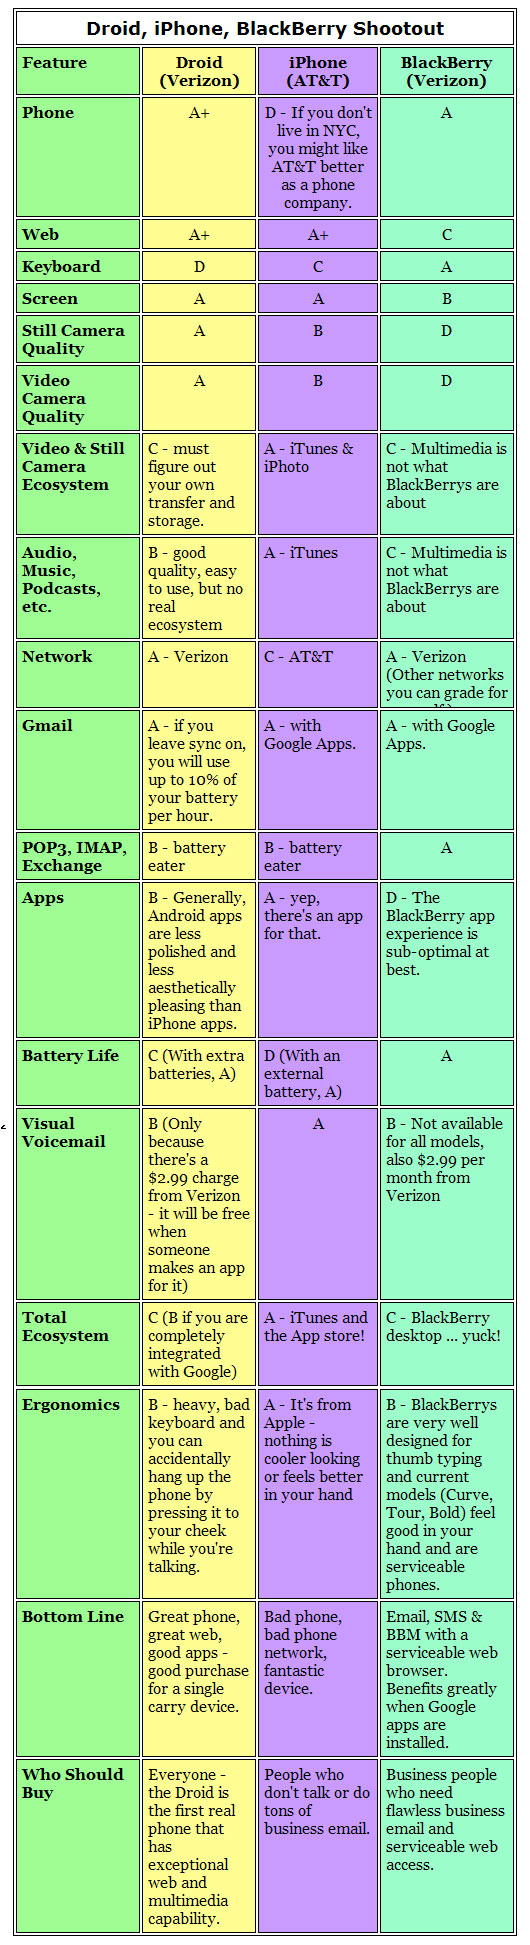 DROID vs. iPhone vs. BlackBerry Comparison Matrix